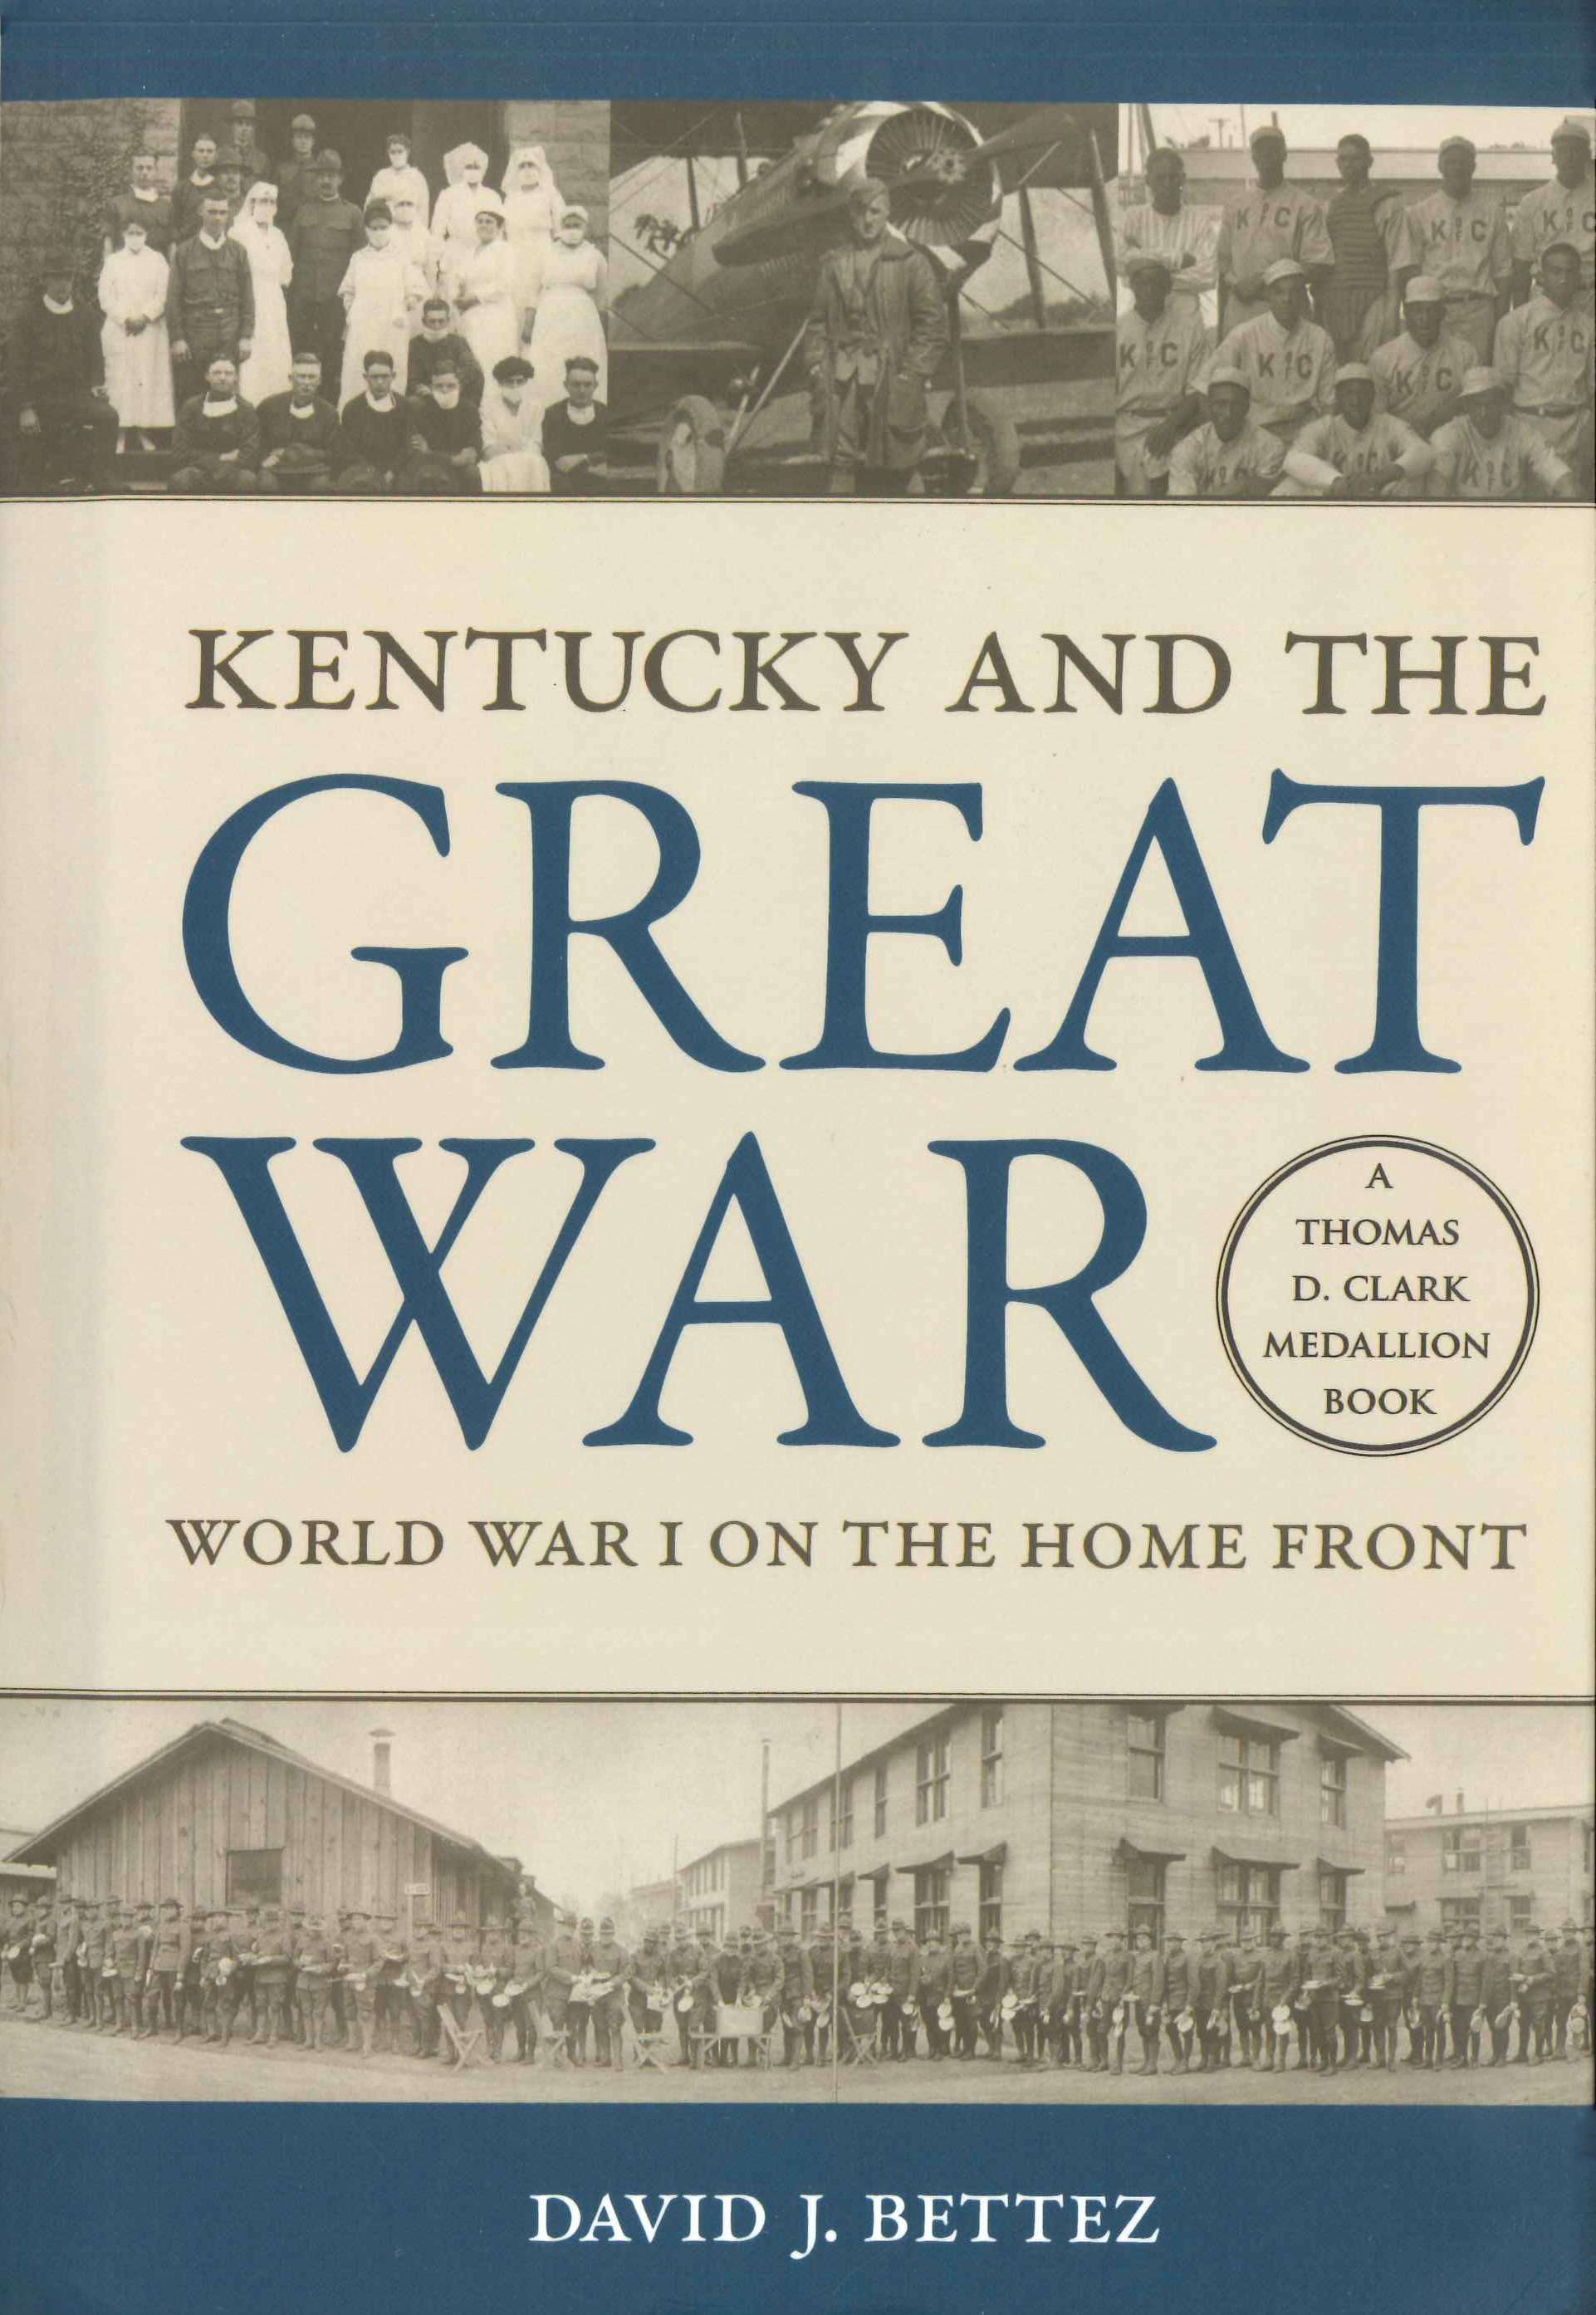 Kentucky and the Great War by David J. Bettez